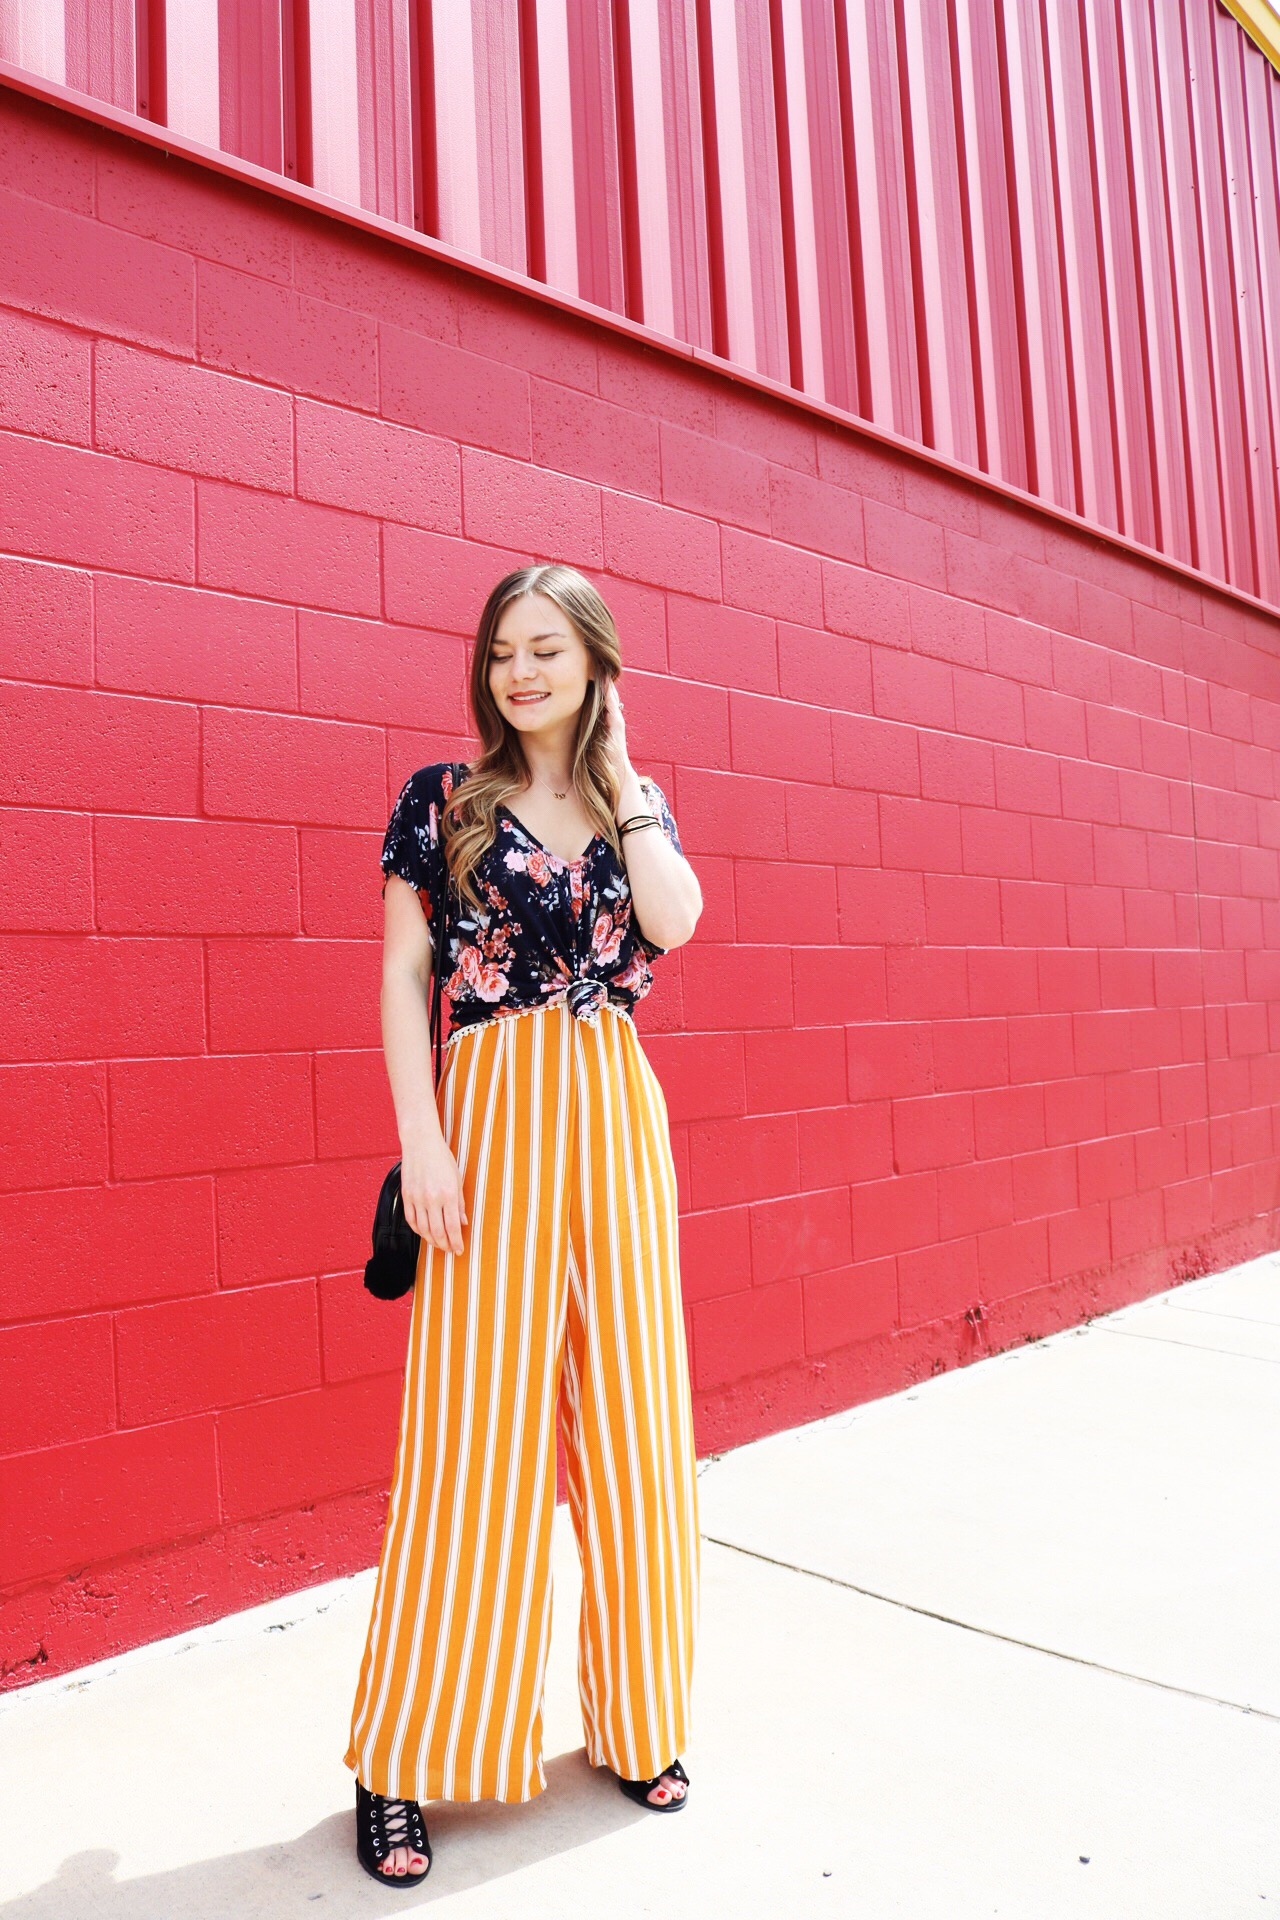 Yellow striped jumpsuit with open toed wedges. How to turn a jumpsuit into a different outfit.